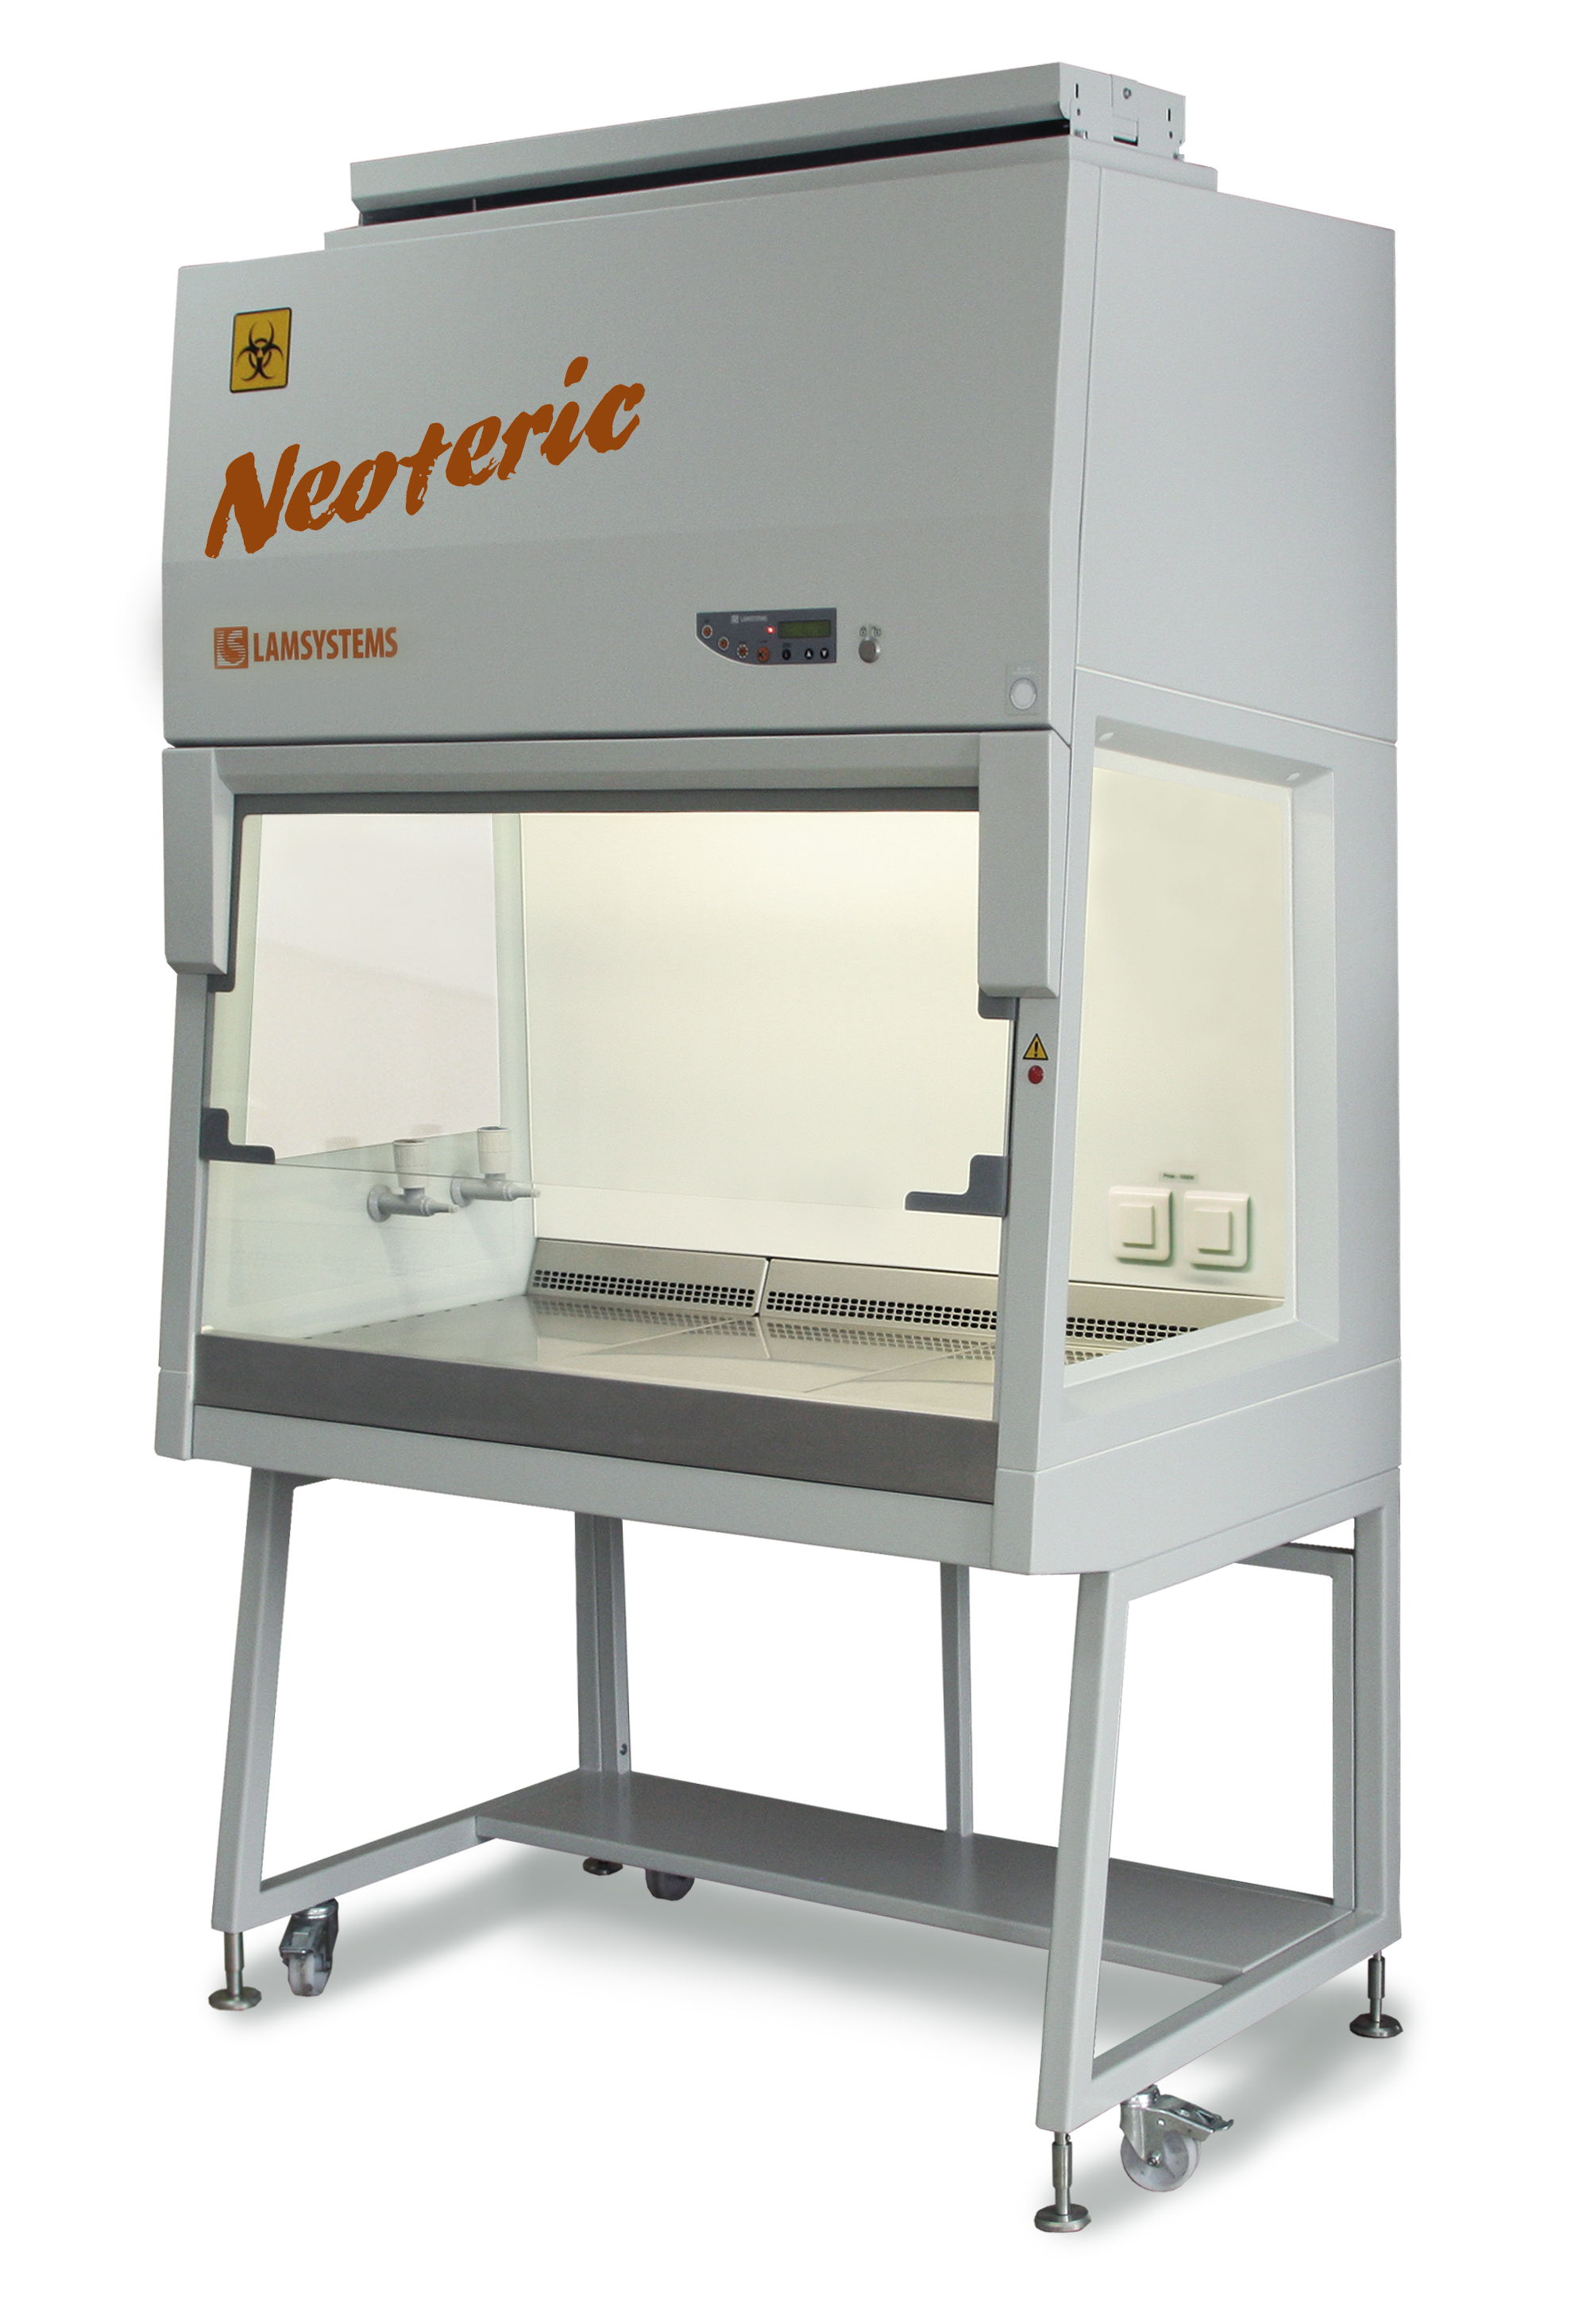 Microbiological Safety Cabinets, Class II type A2 NEOTERIC -- LAMSYSTEMS